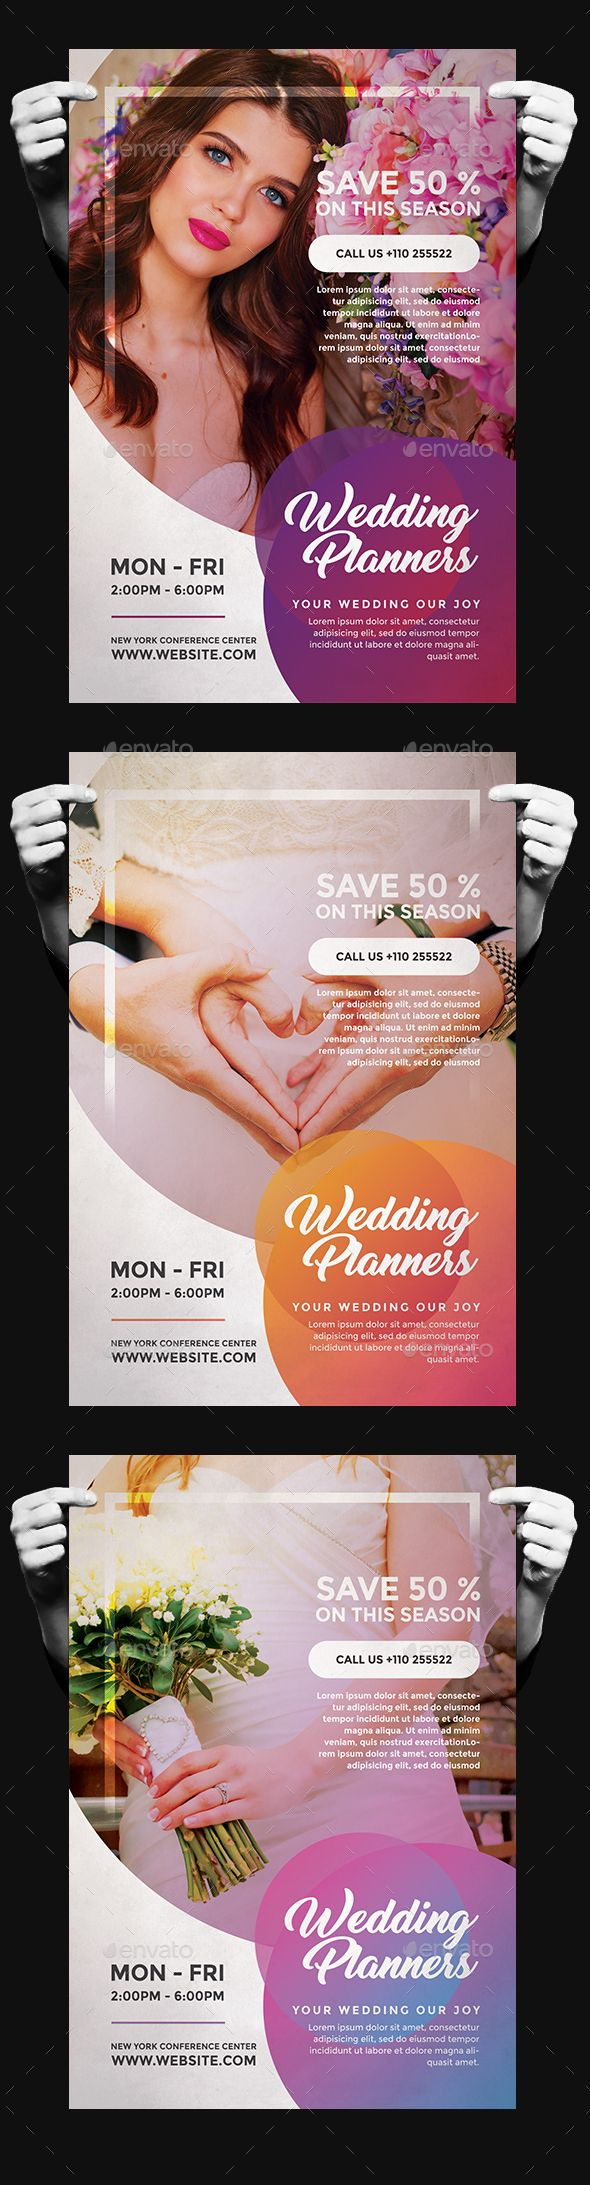 wedding planner flyer download designs and template